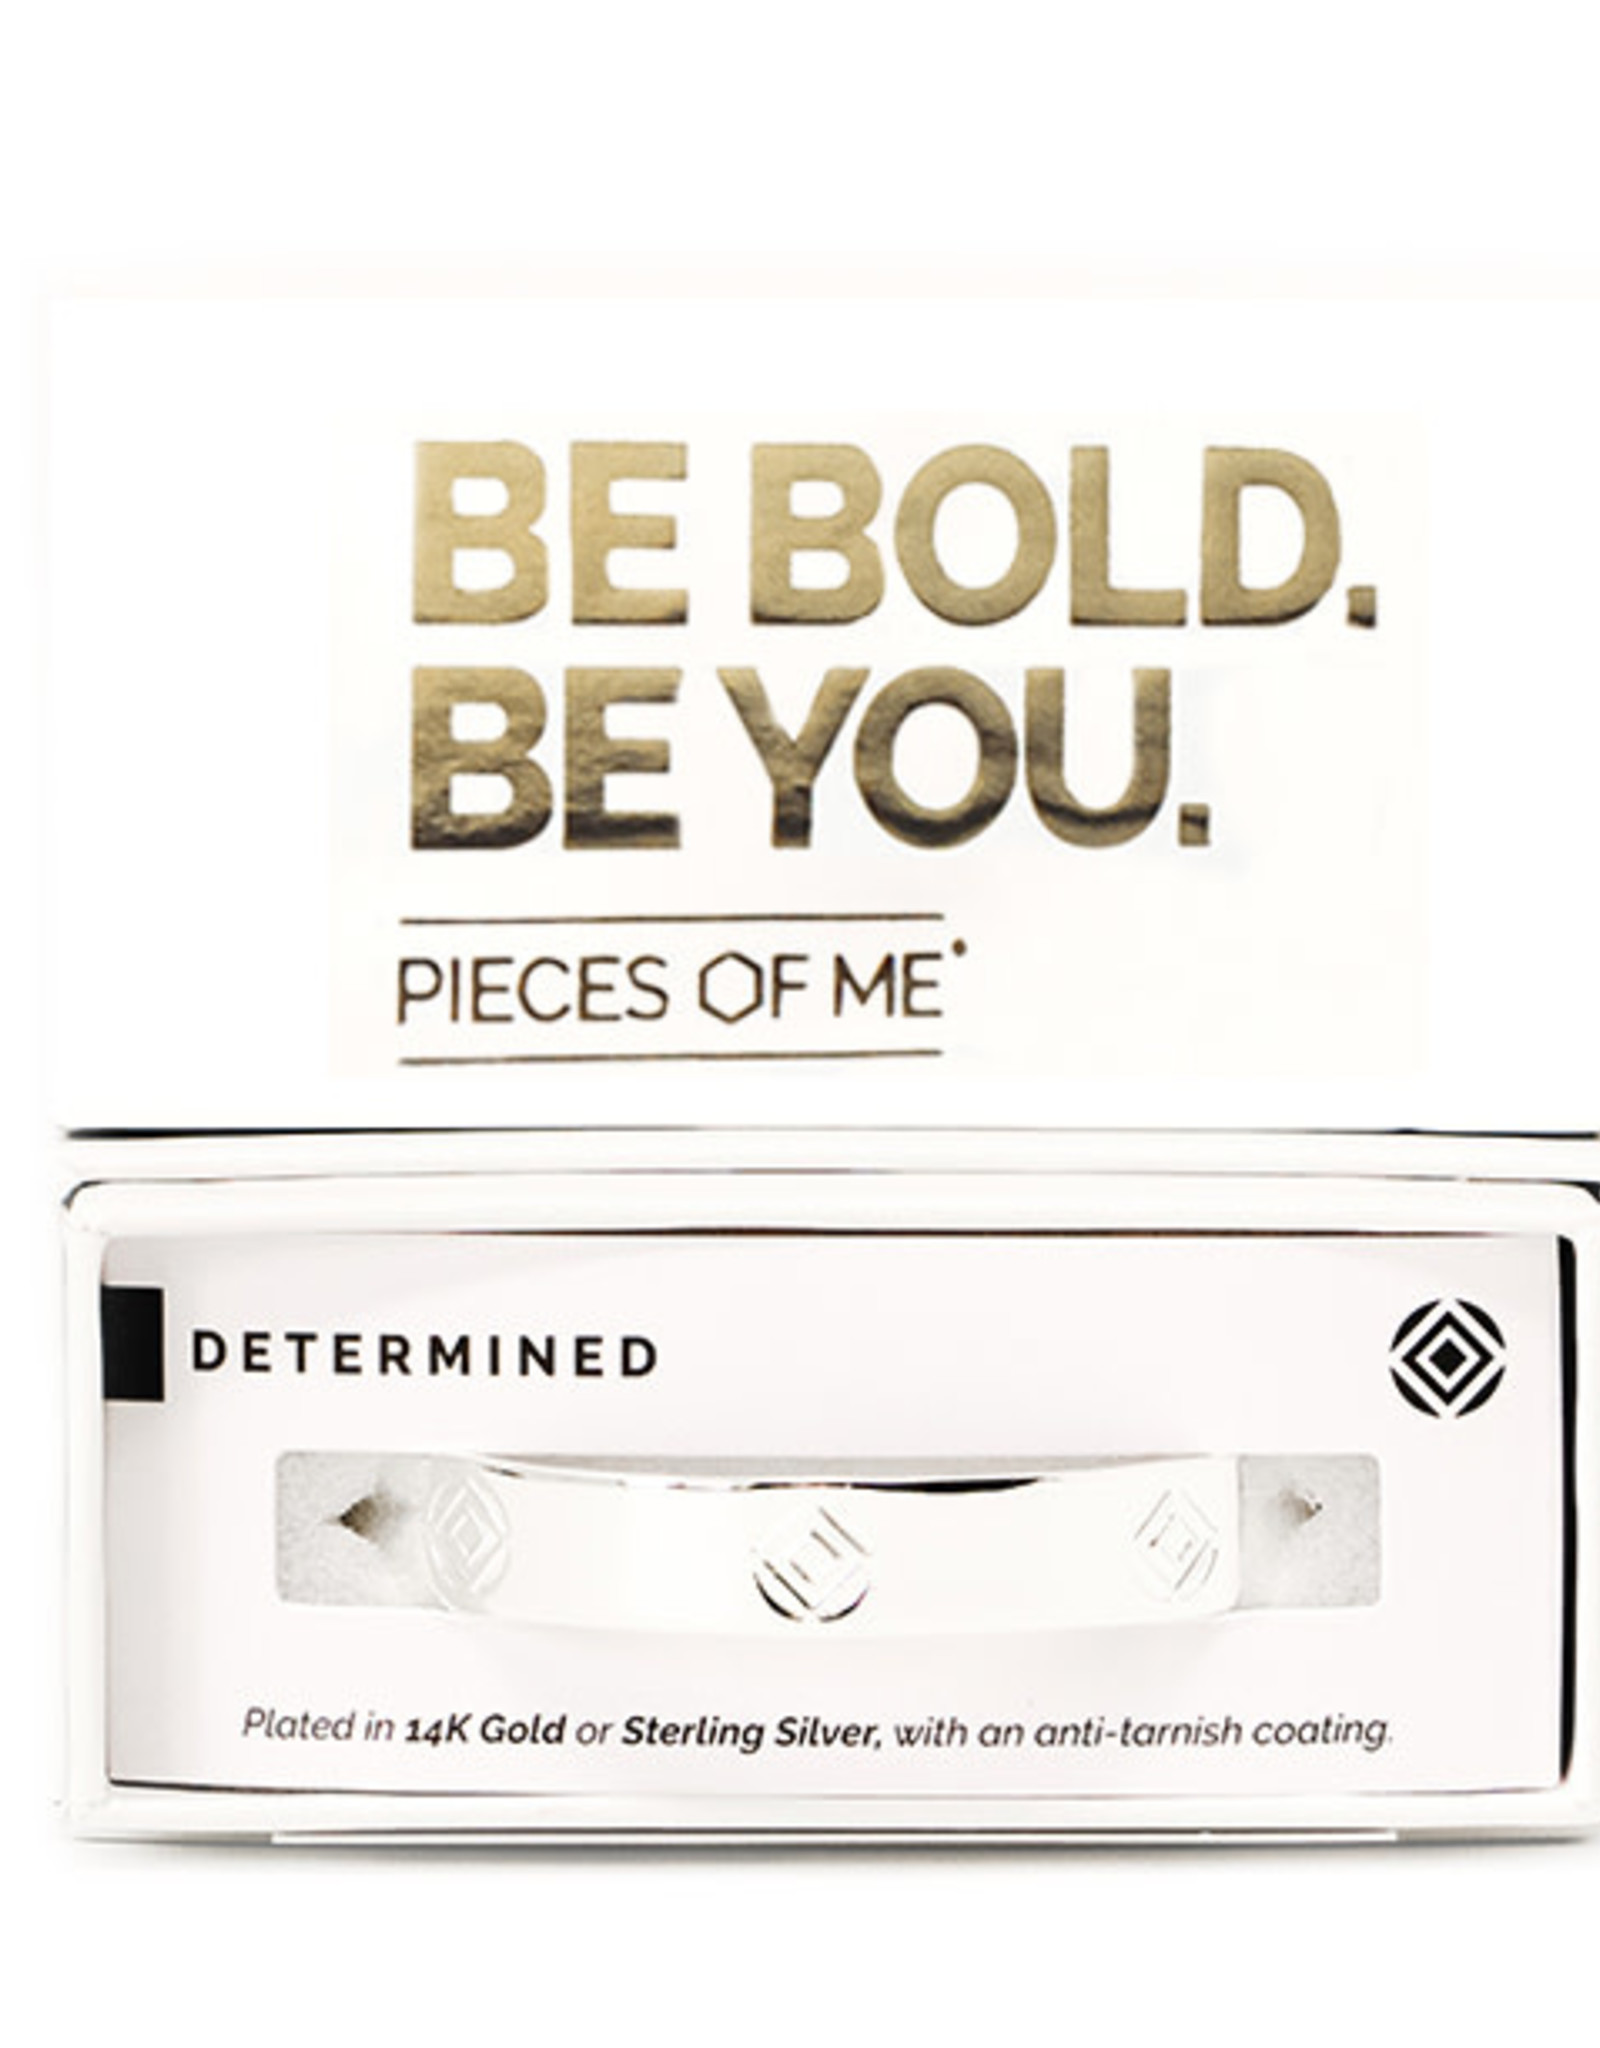 Pieces of Me Bracelet Determined Silver